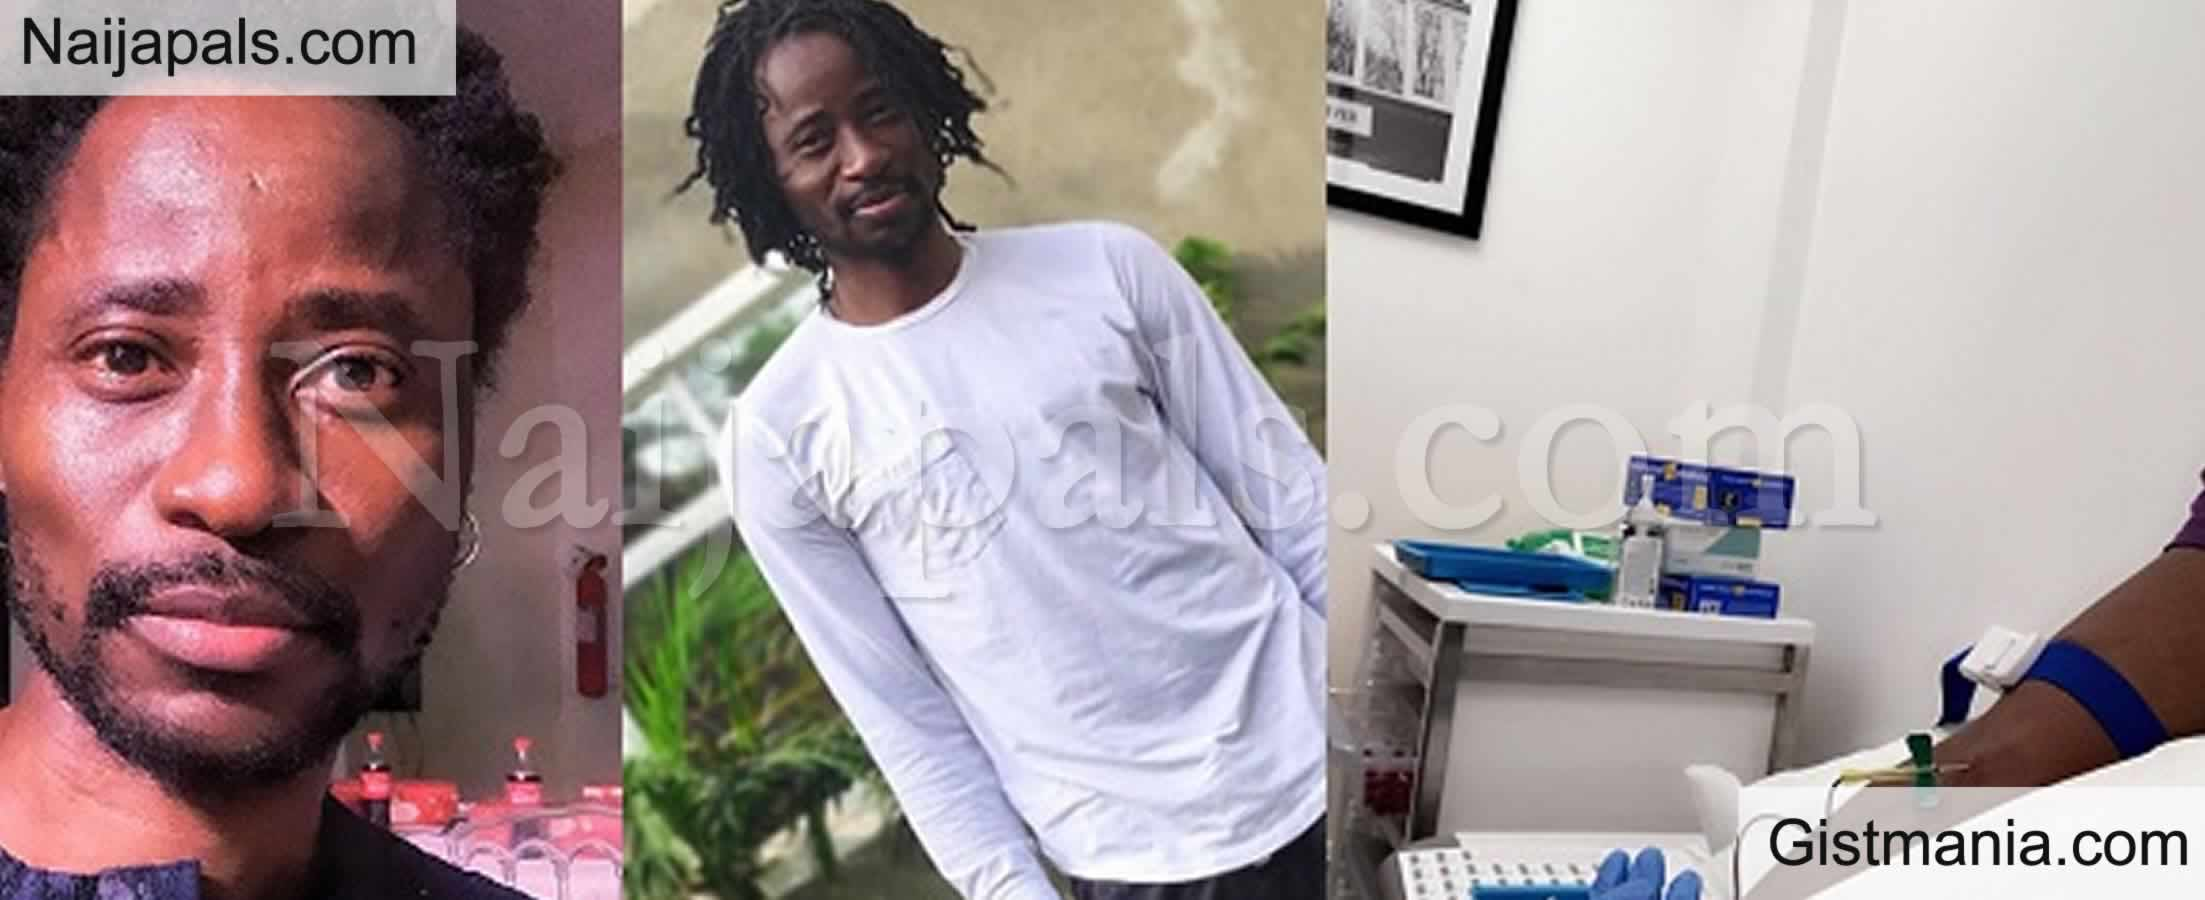 <img alt='.' class='lazyload' data-src='https://img.gistmania.com/emot/comment.gif' /><b> Gay Rights Activist, Bisi Alimi Marks 16yrs of Living With HIV</b> Says The Virus No Longer Scary